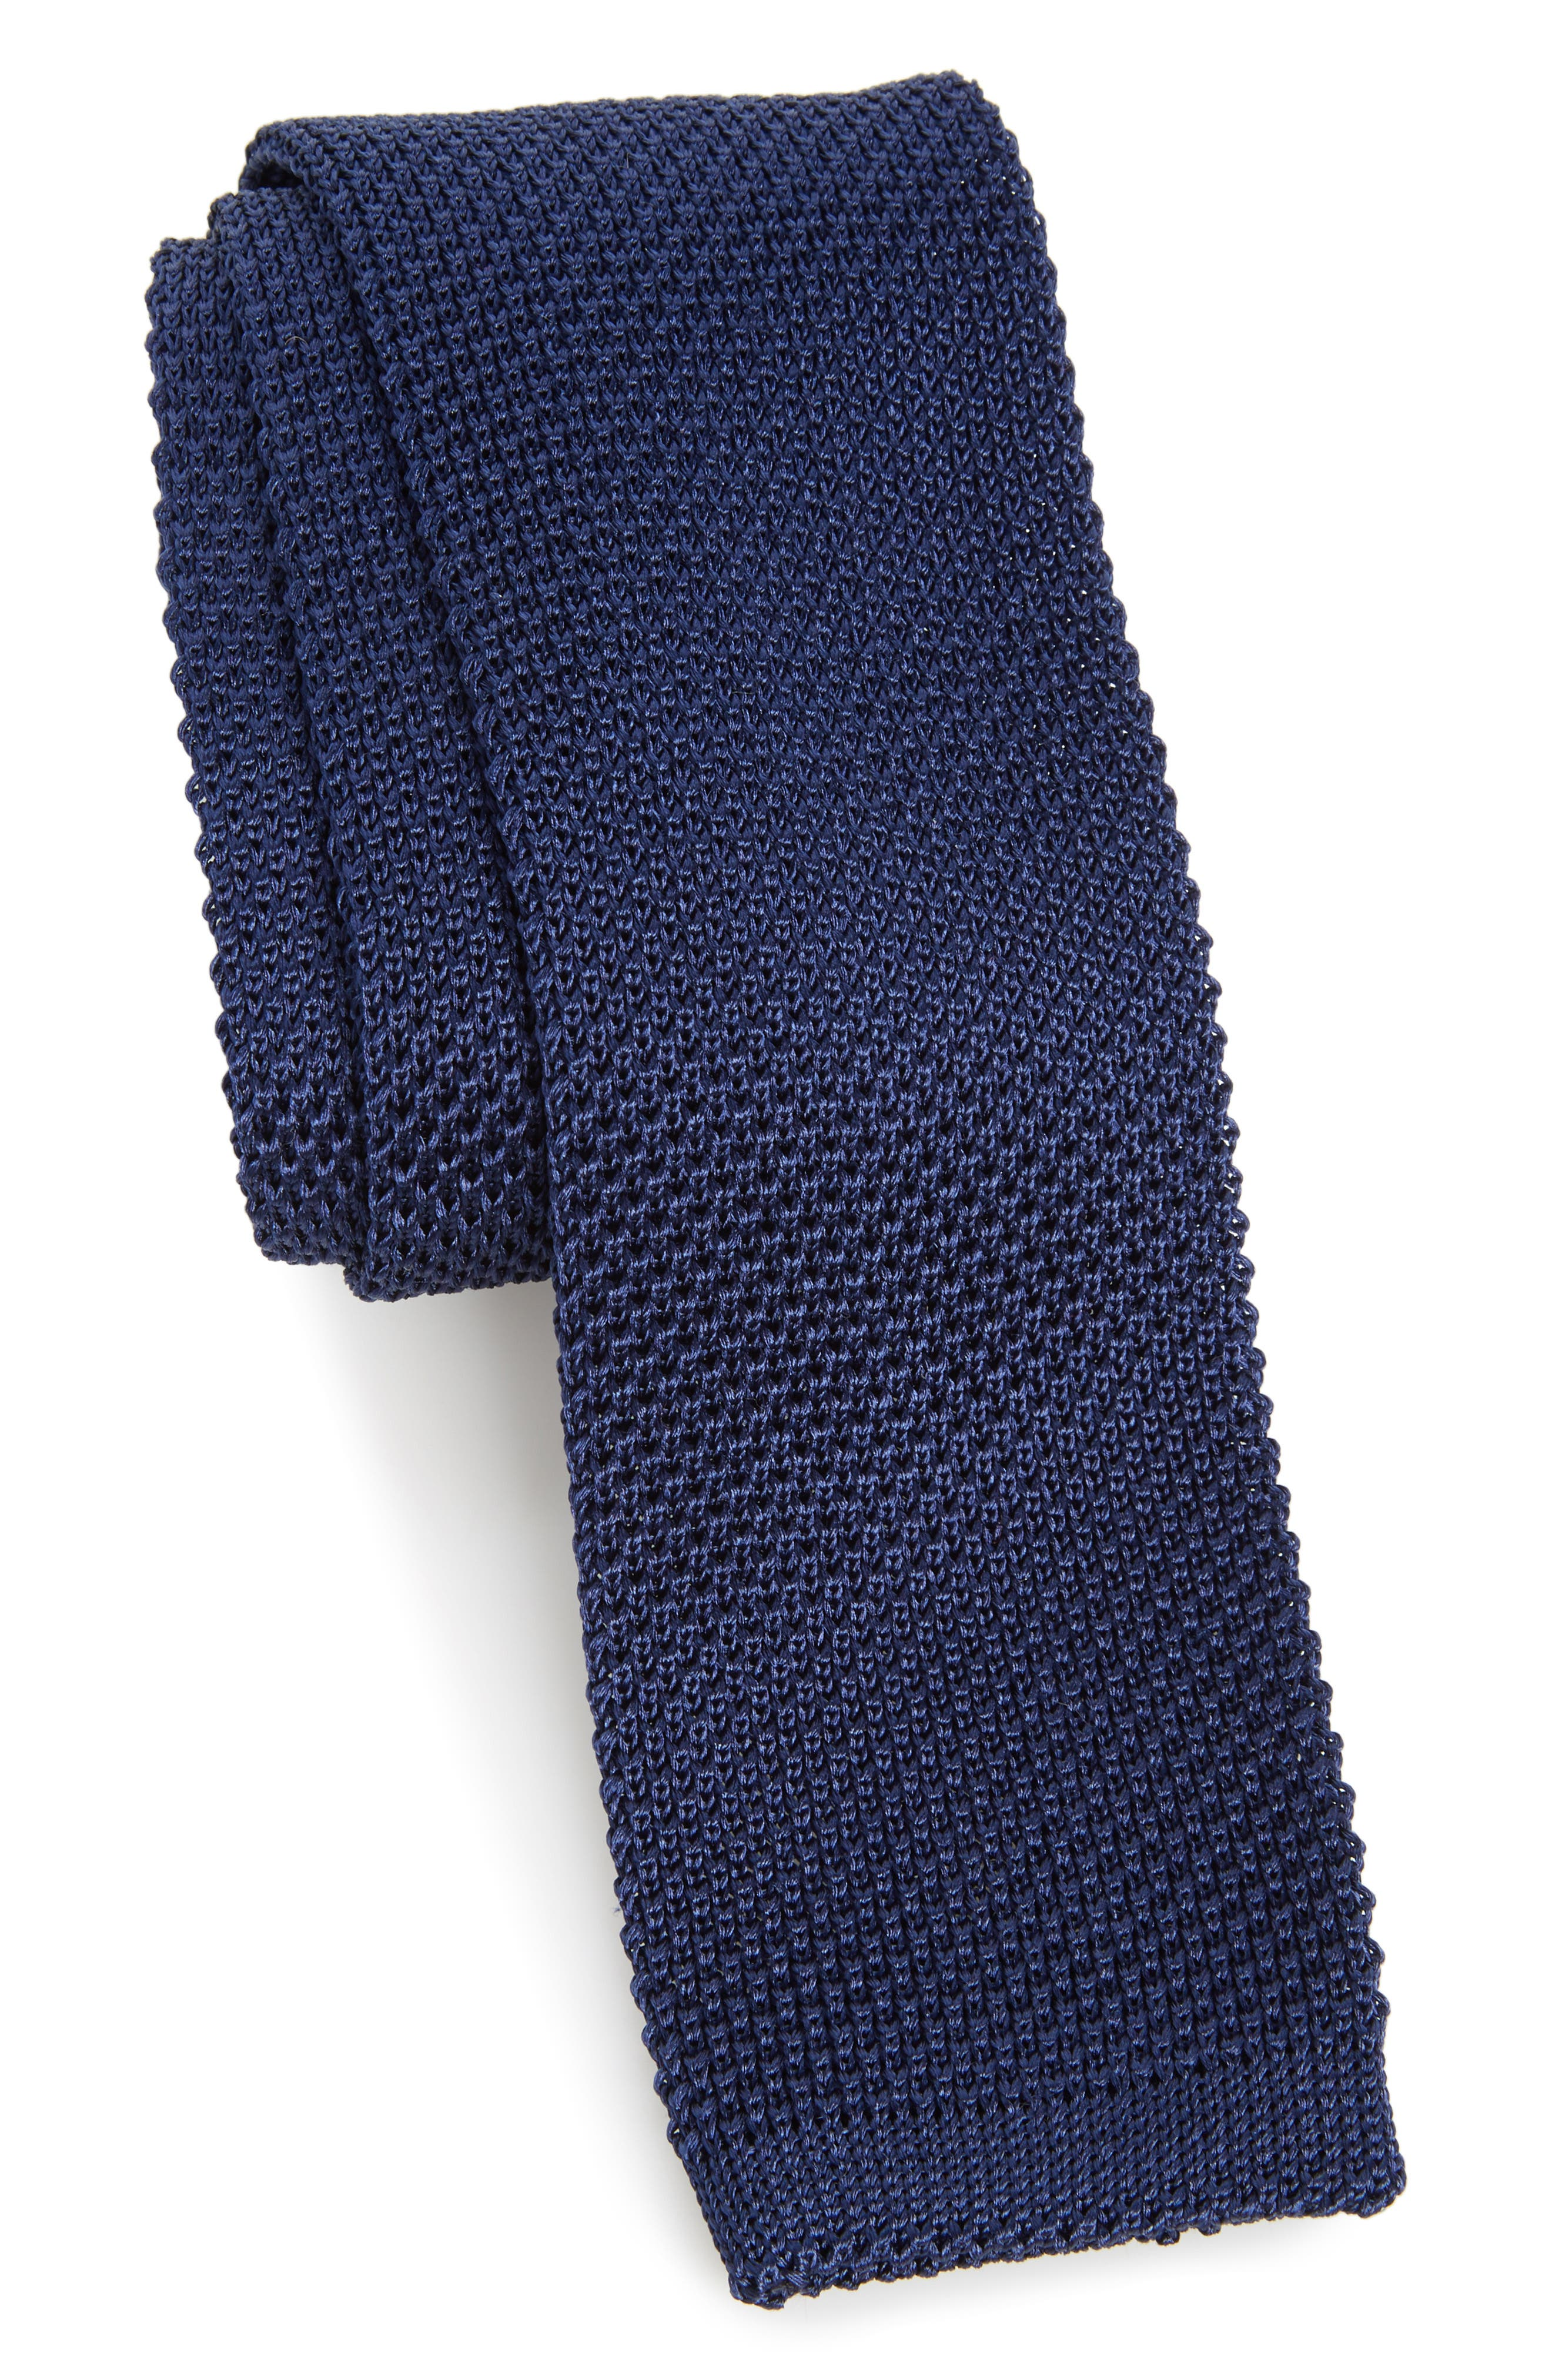 Alternate Image 1 Selected - Nordstrom Men's Shop Stuart Silk Knit Tie